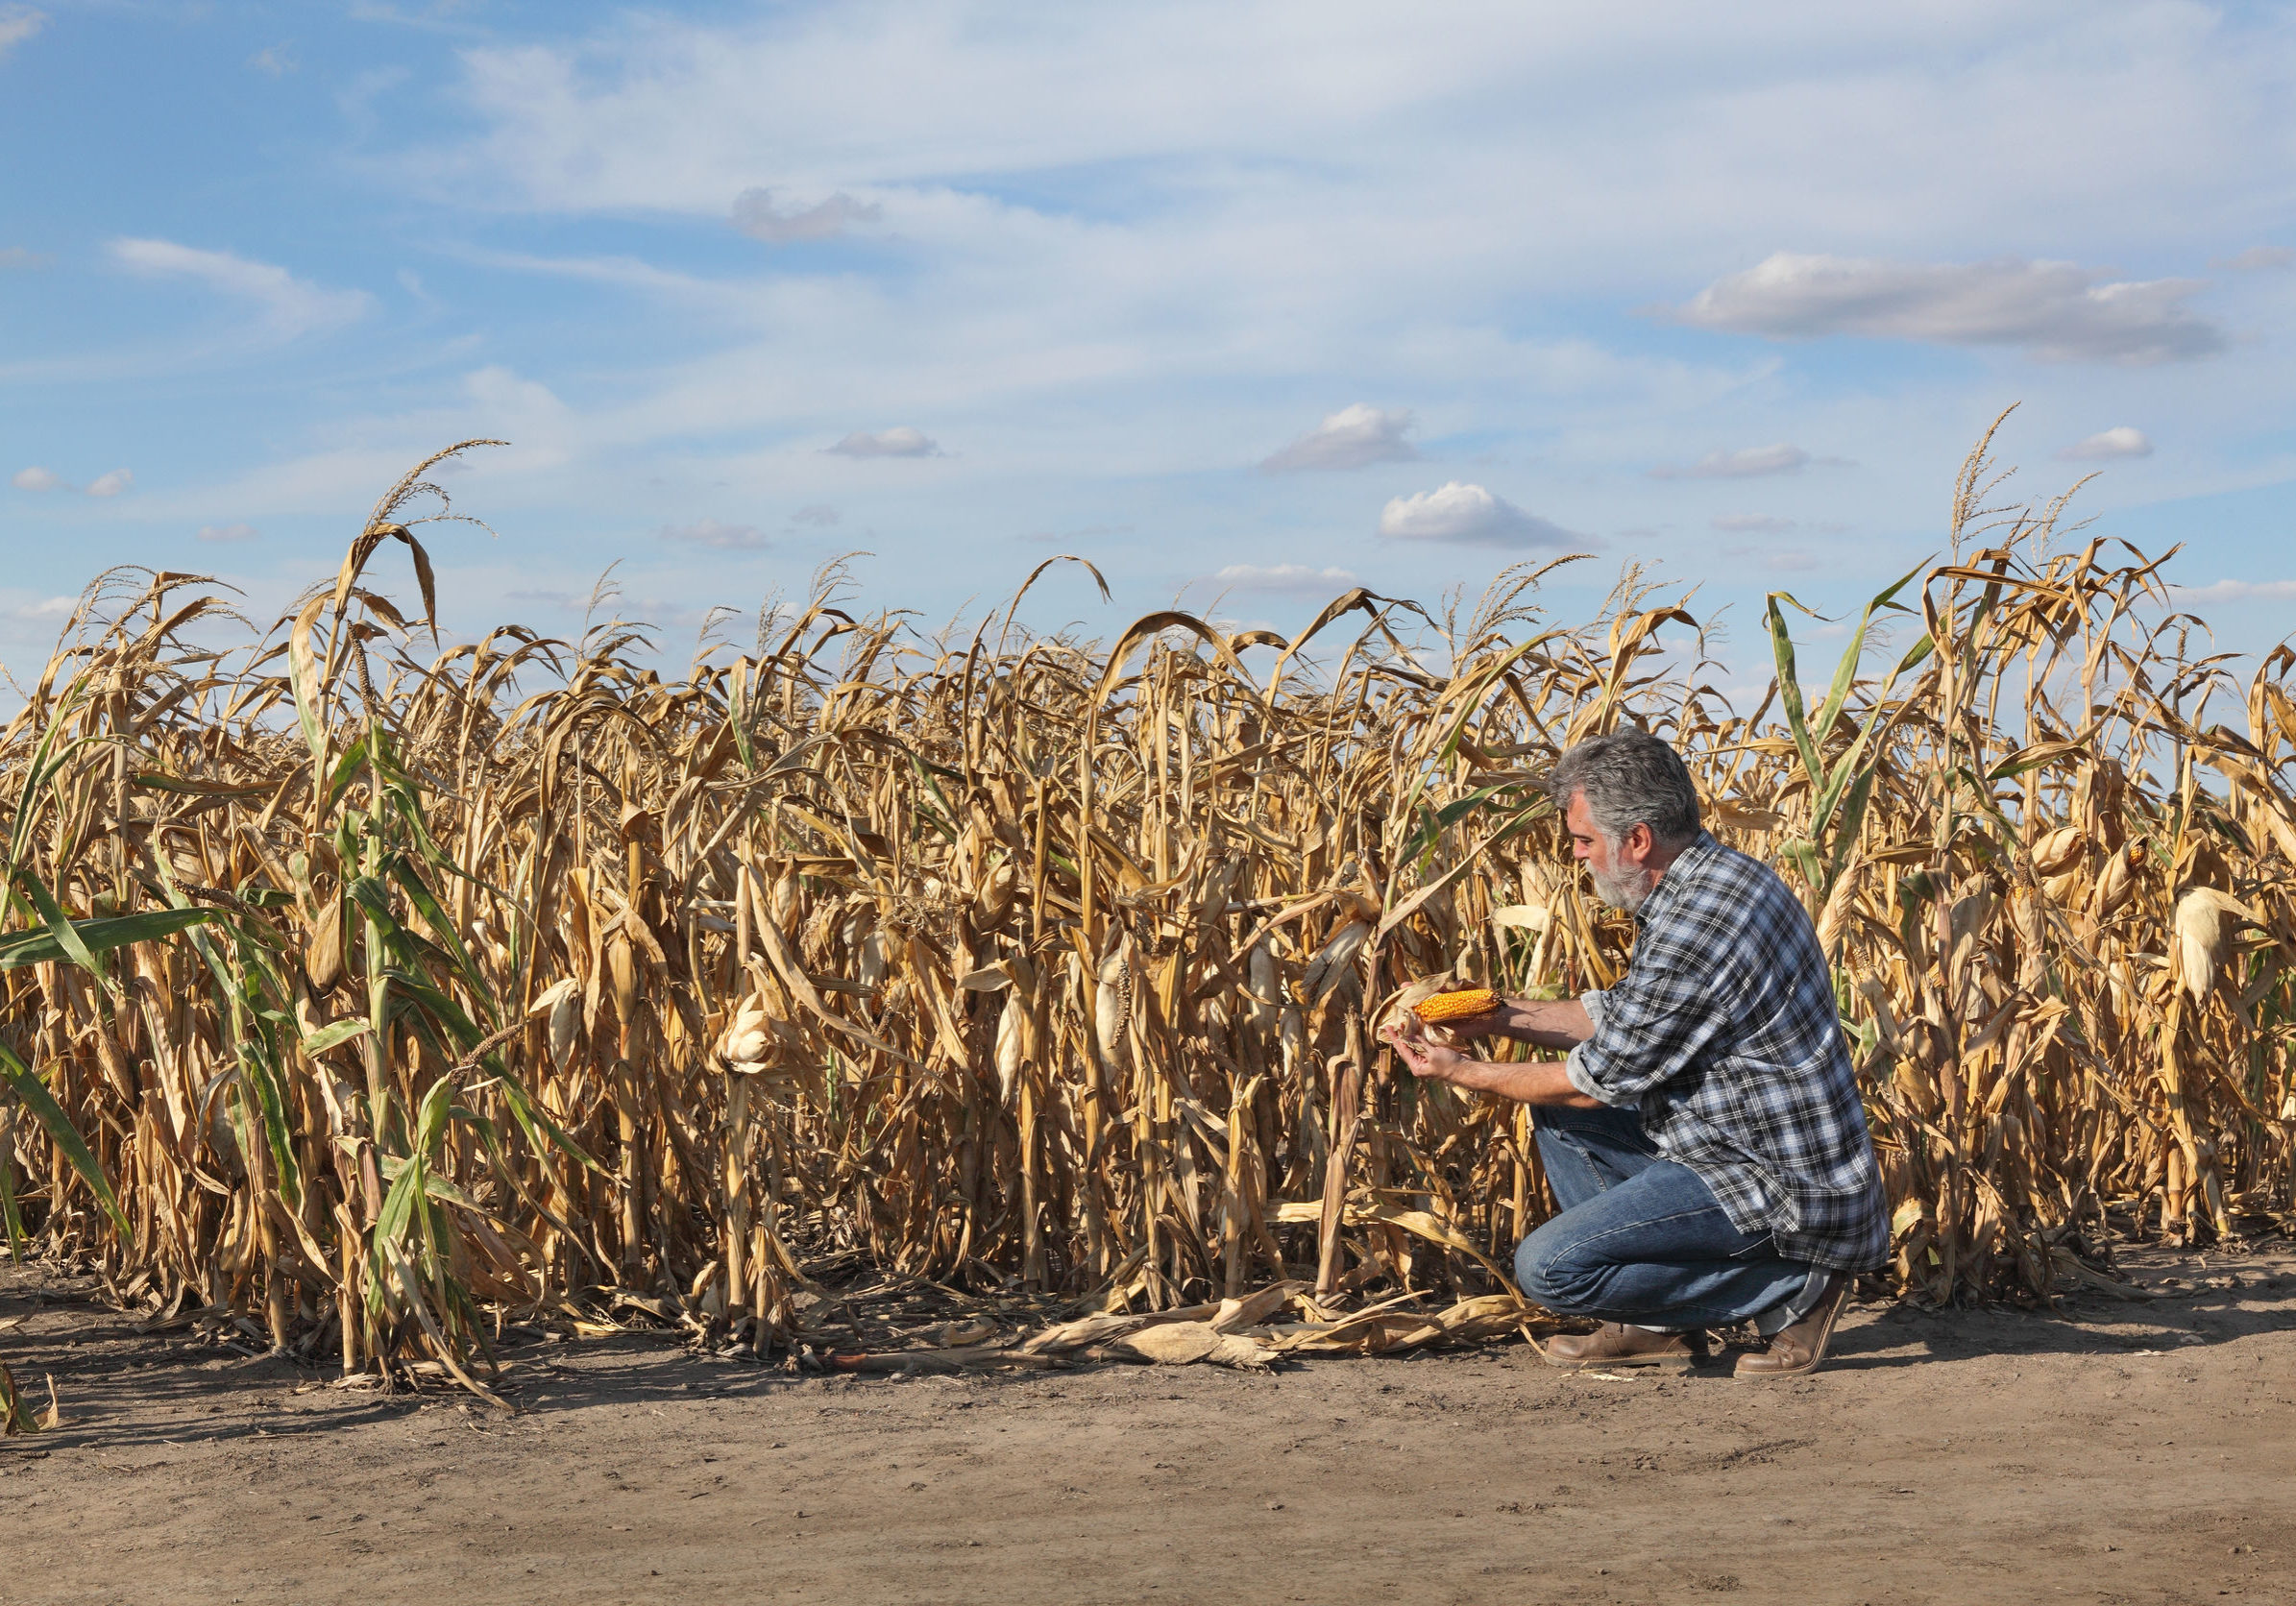 Farmer or agronomist examining corn plant in field after drought, harvest time